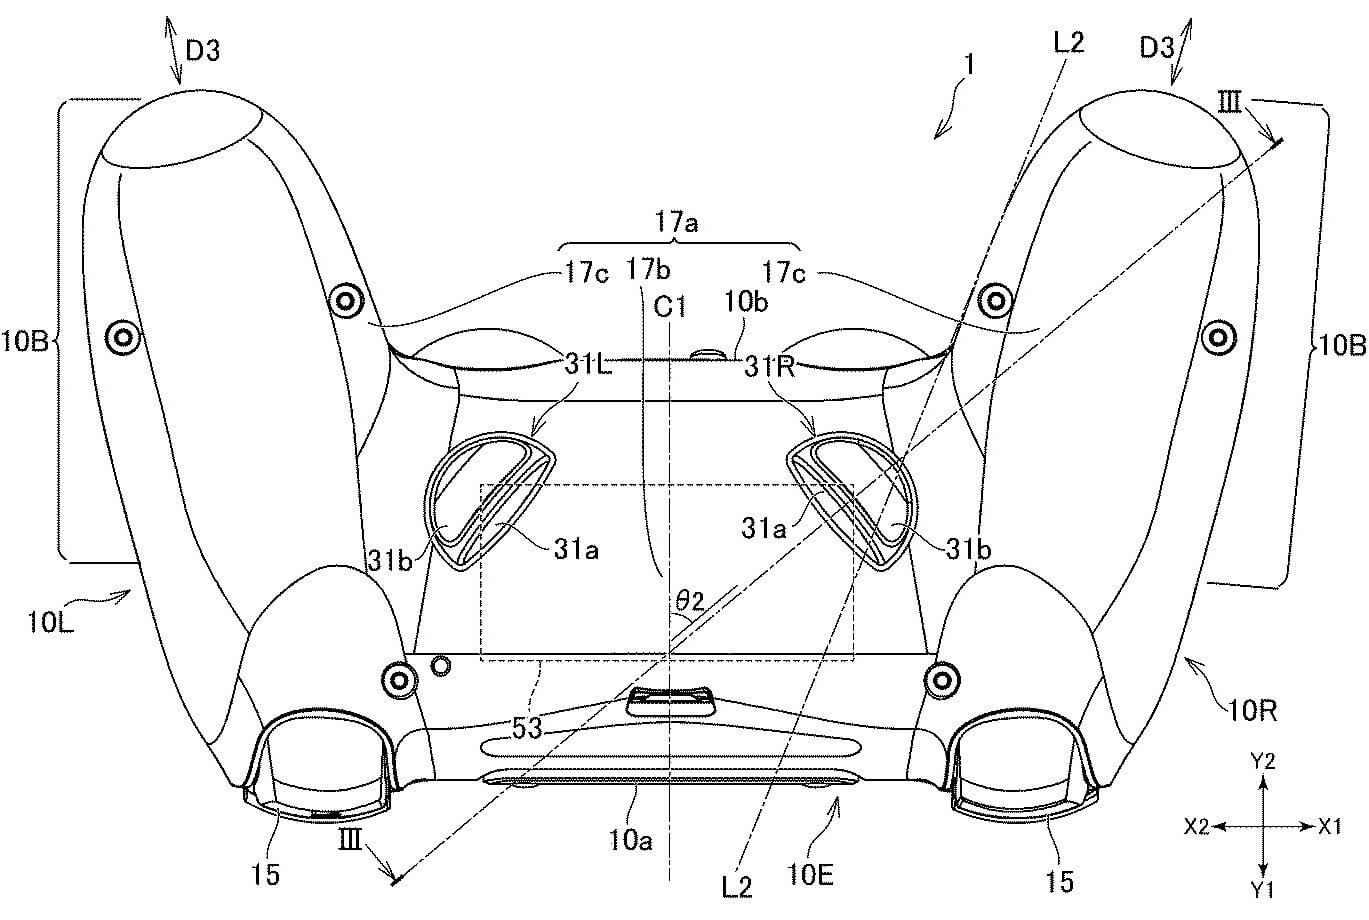 Sony's unending stream of PlayStation-related patent